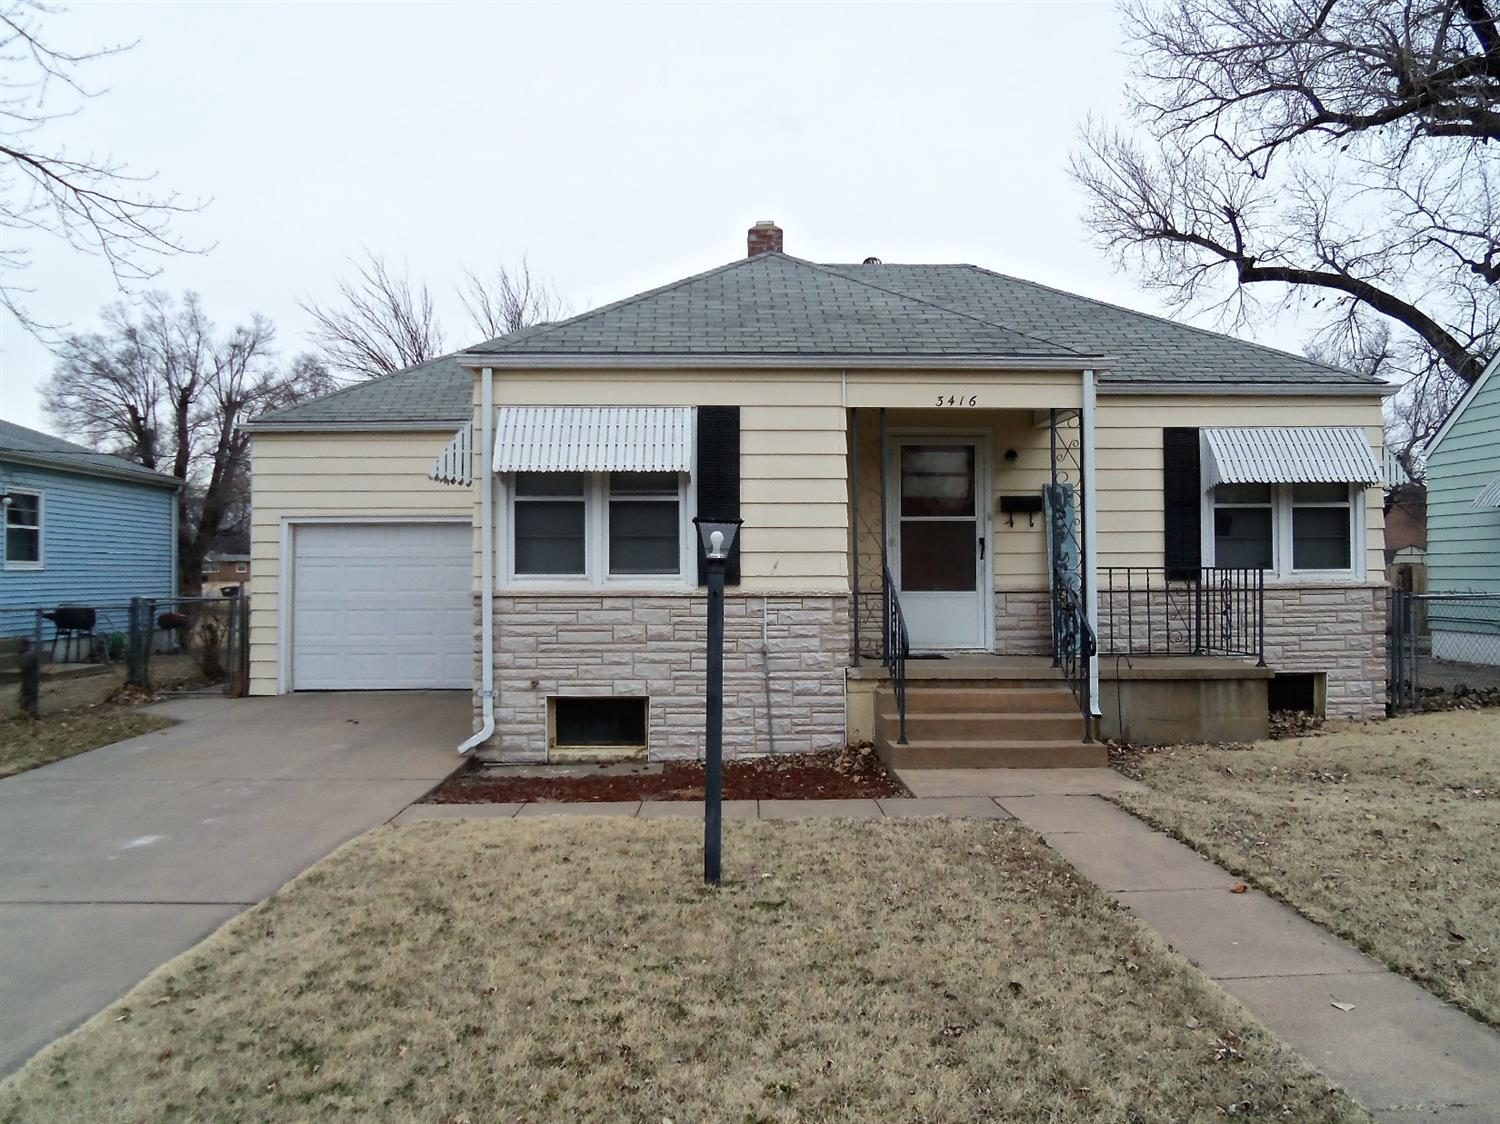 Steel sided 2 bedroom home, beautiful hardwood floors, eat in kitchen, full bath, CH & CA, added insulation in the attic, electrical and plumbing updates.  Full unfinished basement, single attached garage, covered patio and chain link fenced back yard, with alley access.